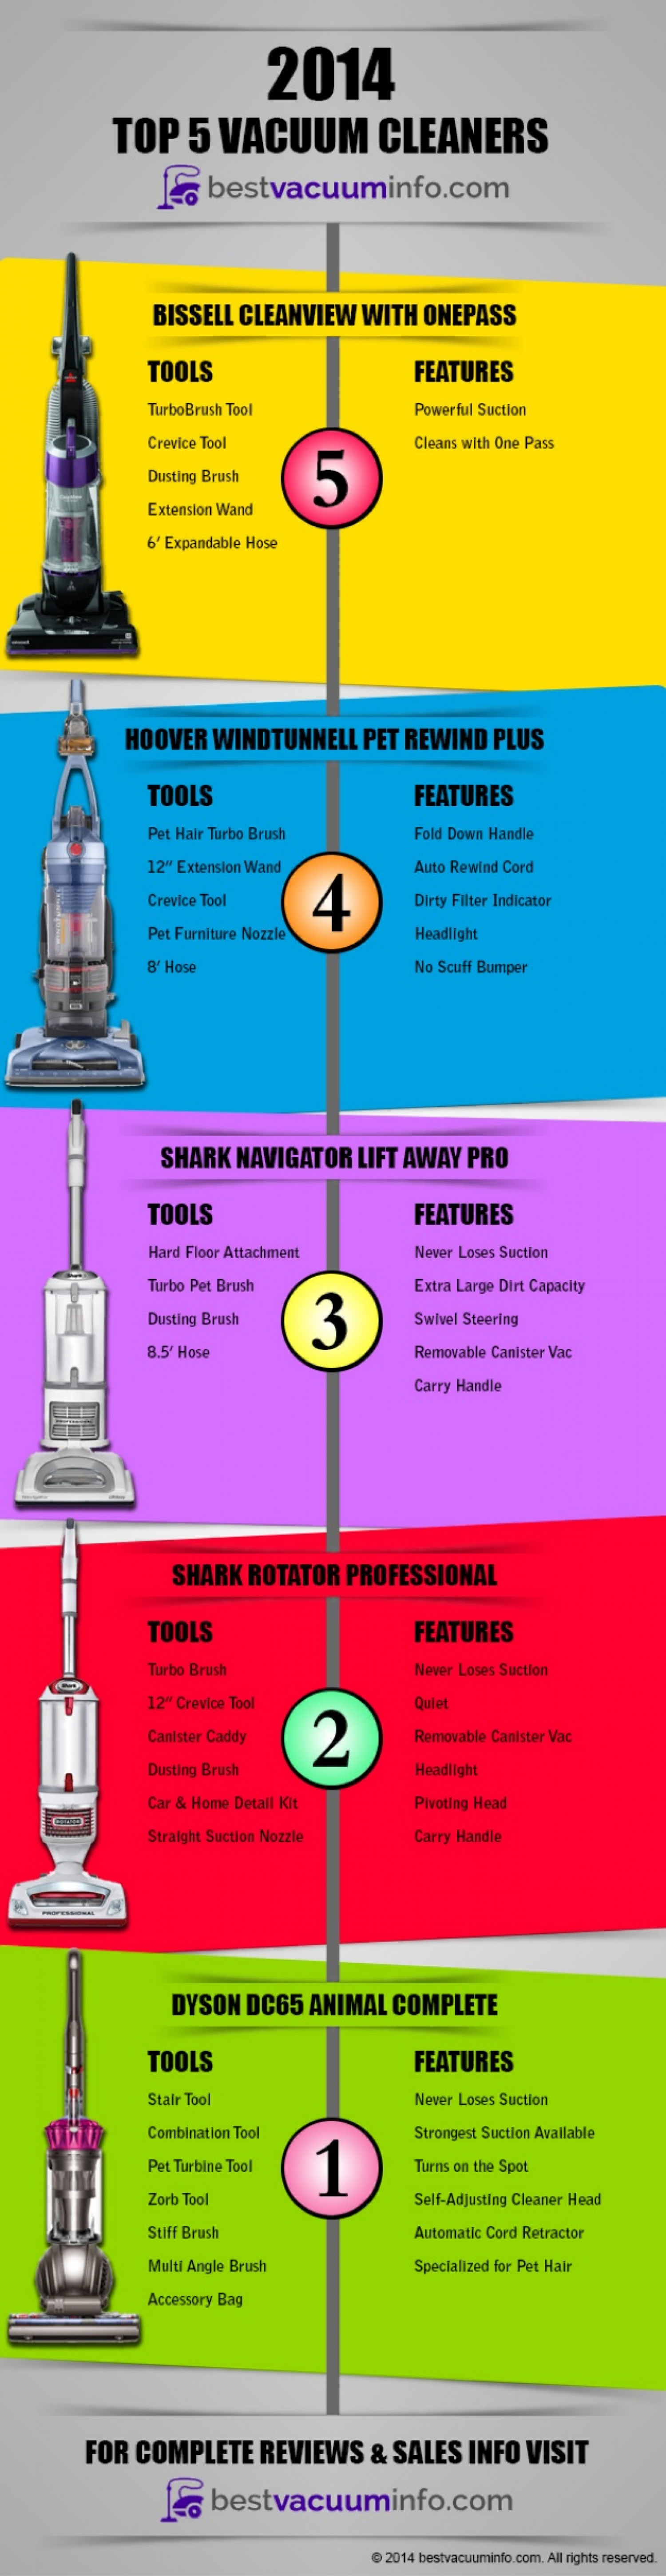 top 5 best vacuum cleaners of 2014 infographic infographic - Top 5 Vacuum Cleaners